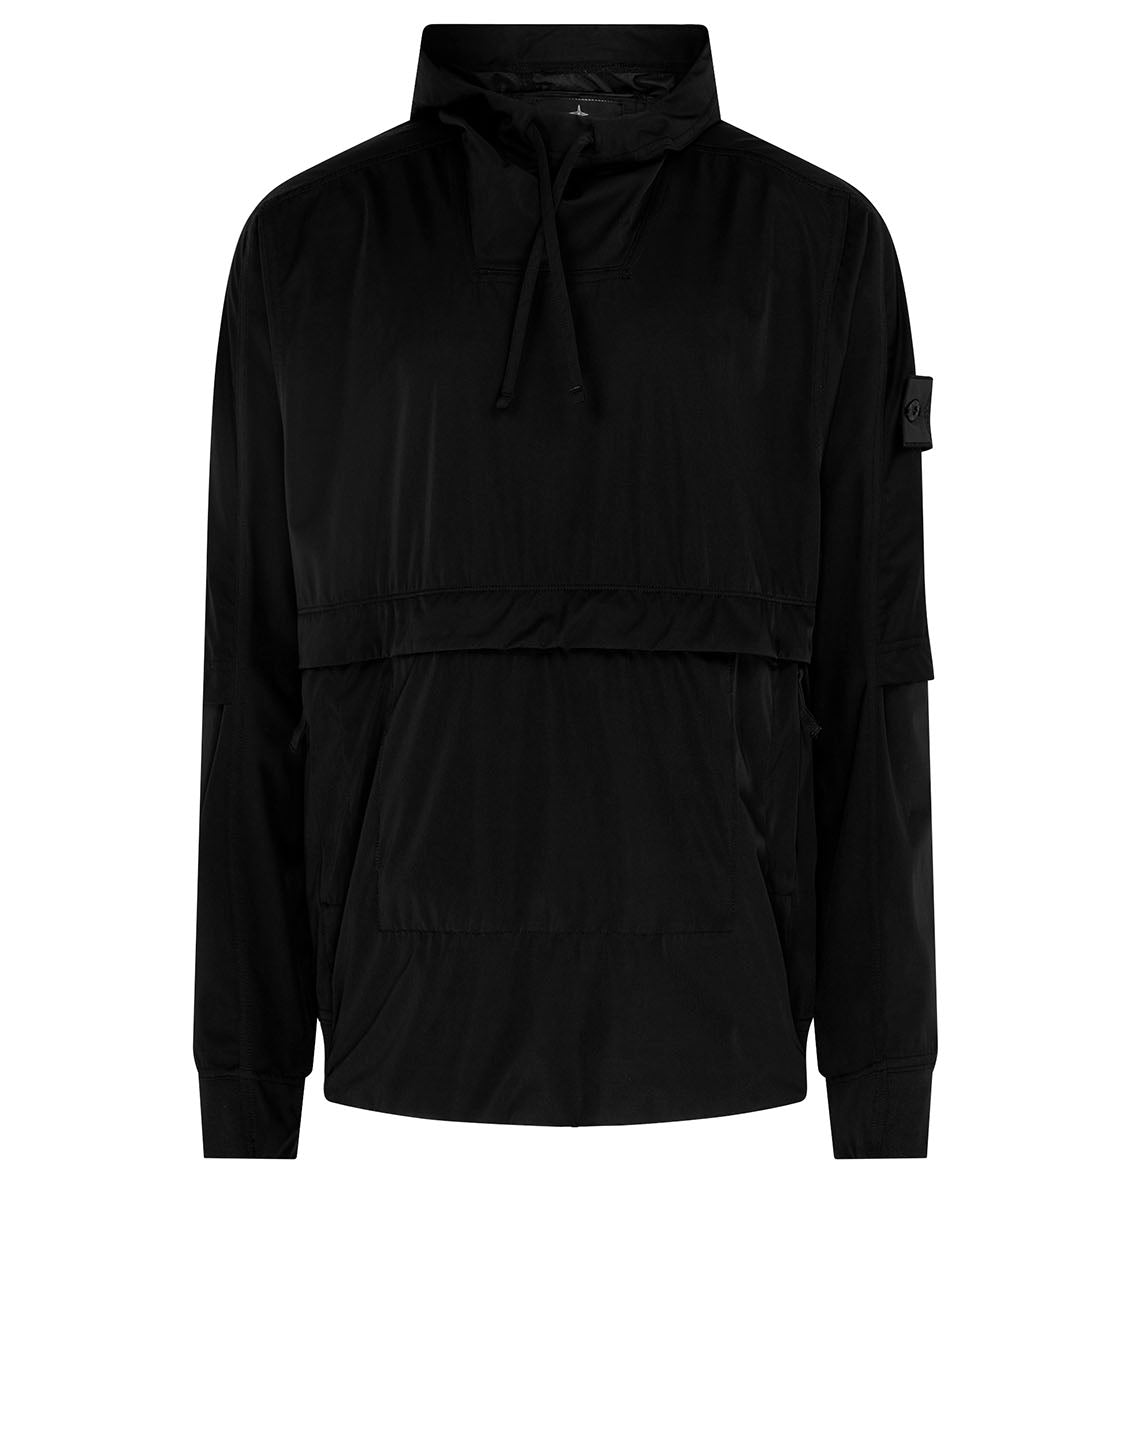 40504 PACKABLE ANORAK in Black